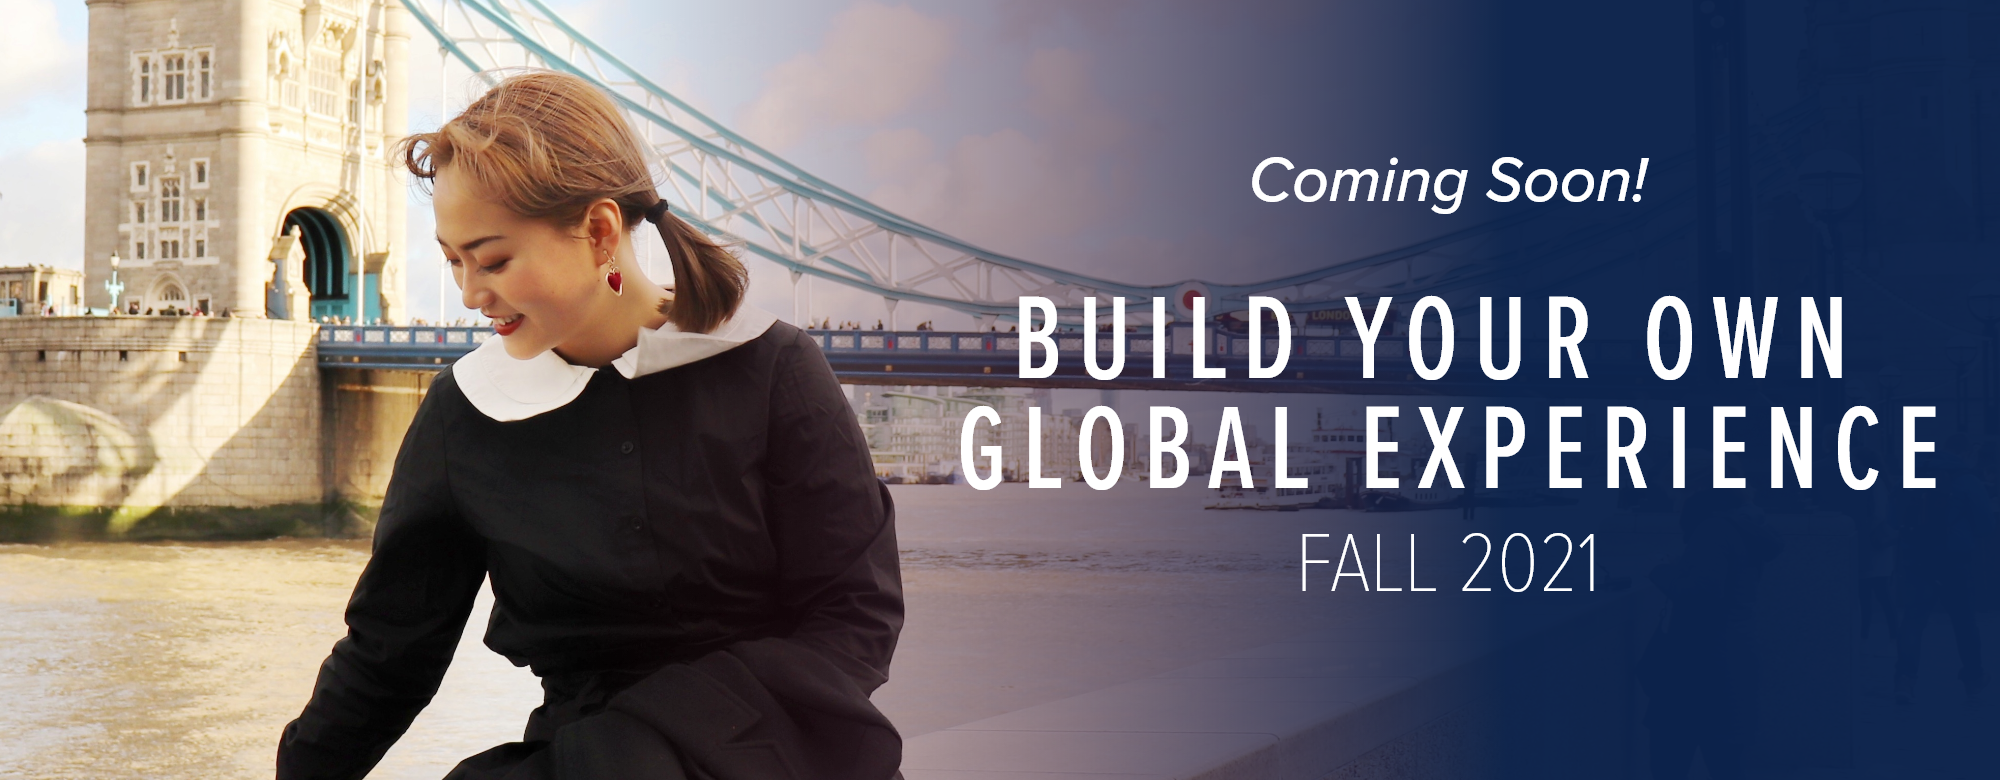 Coming soon! Build your own global experience Fall 2021